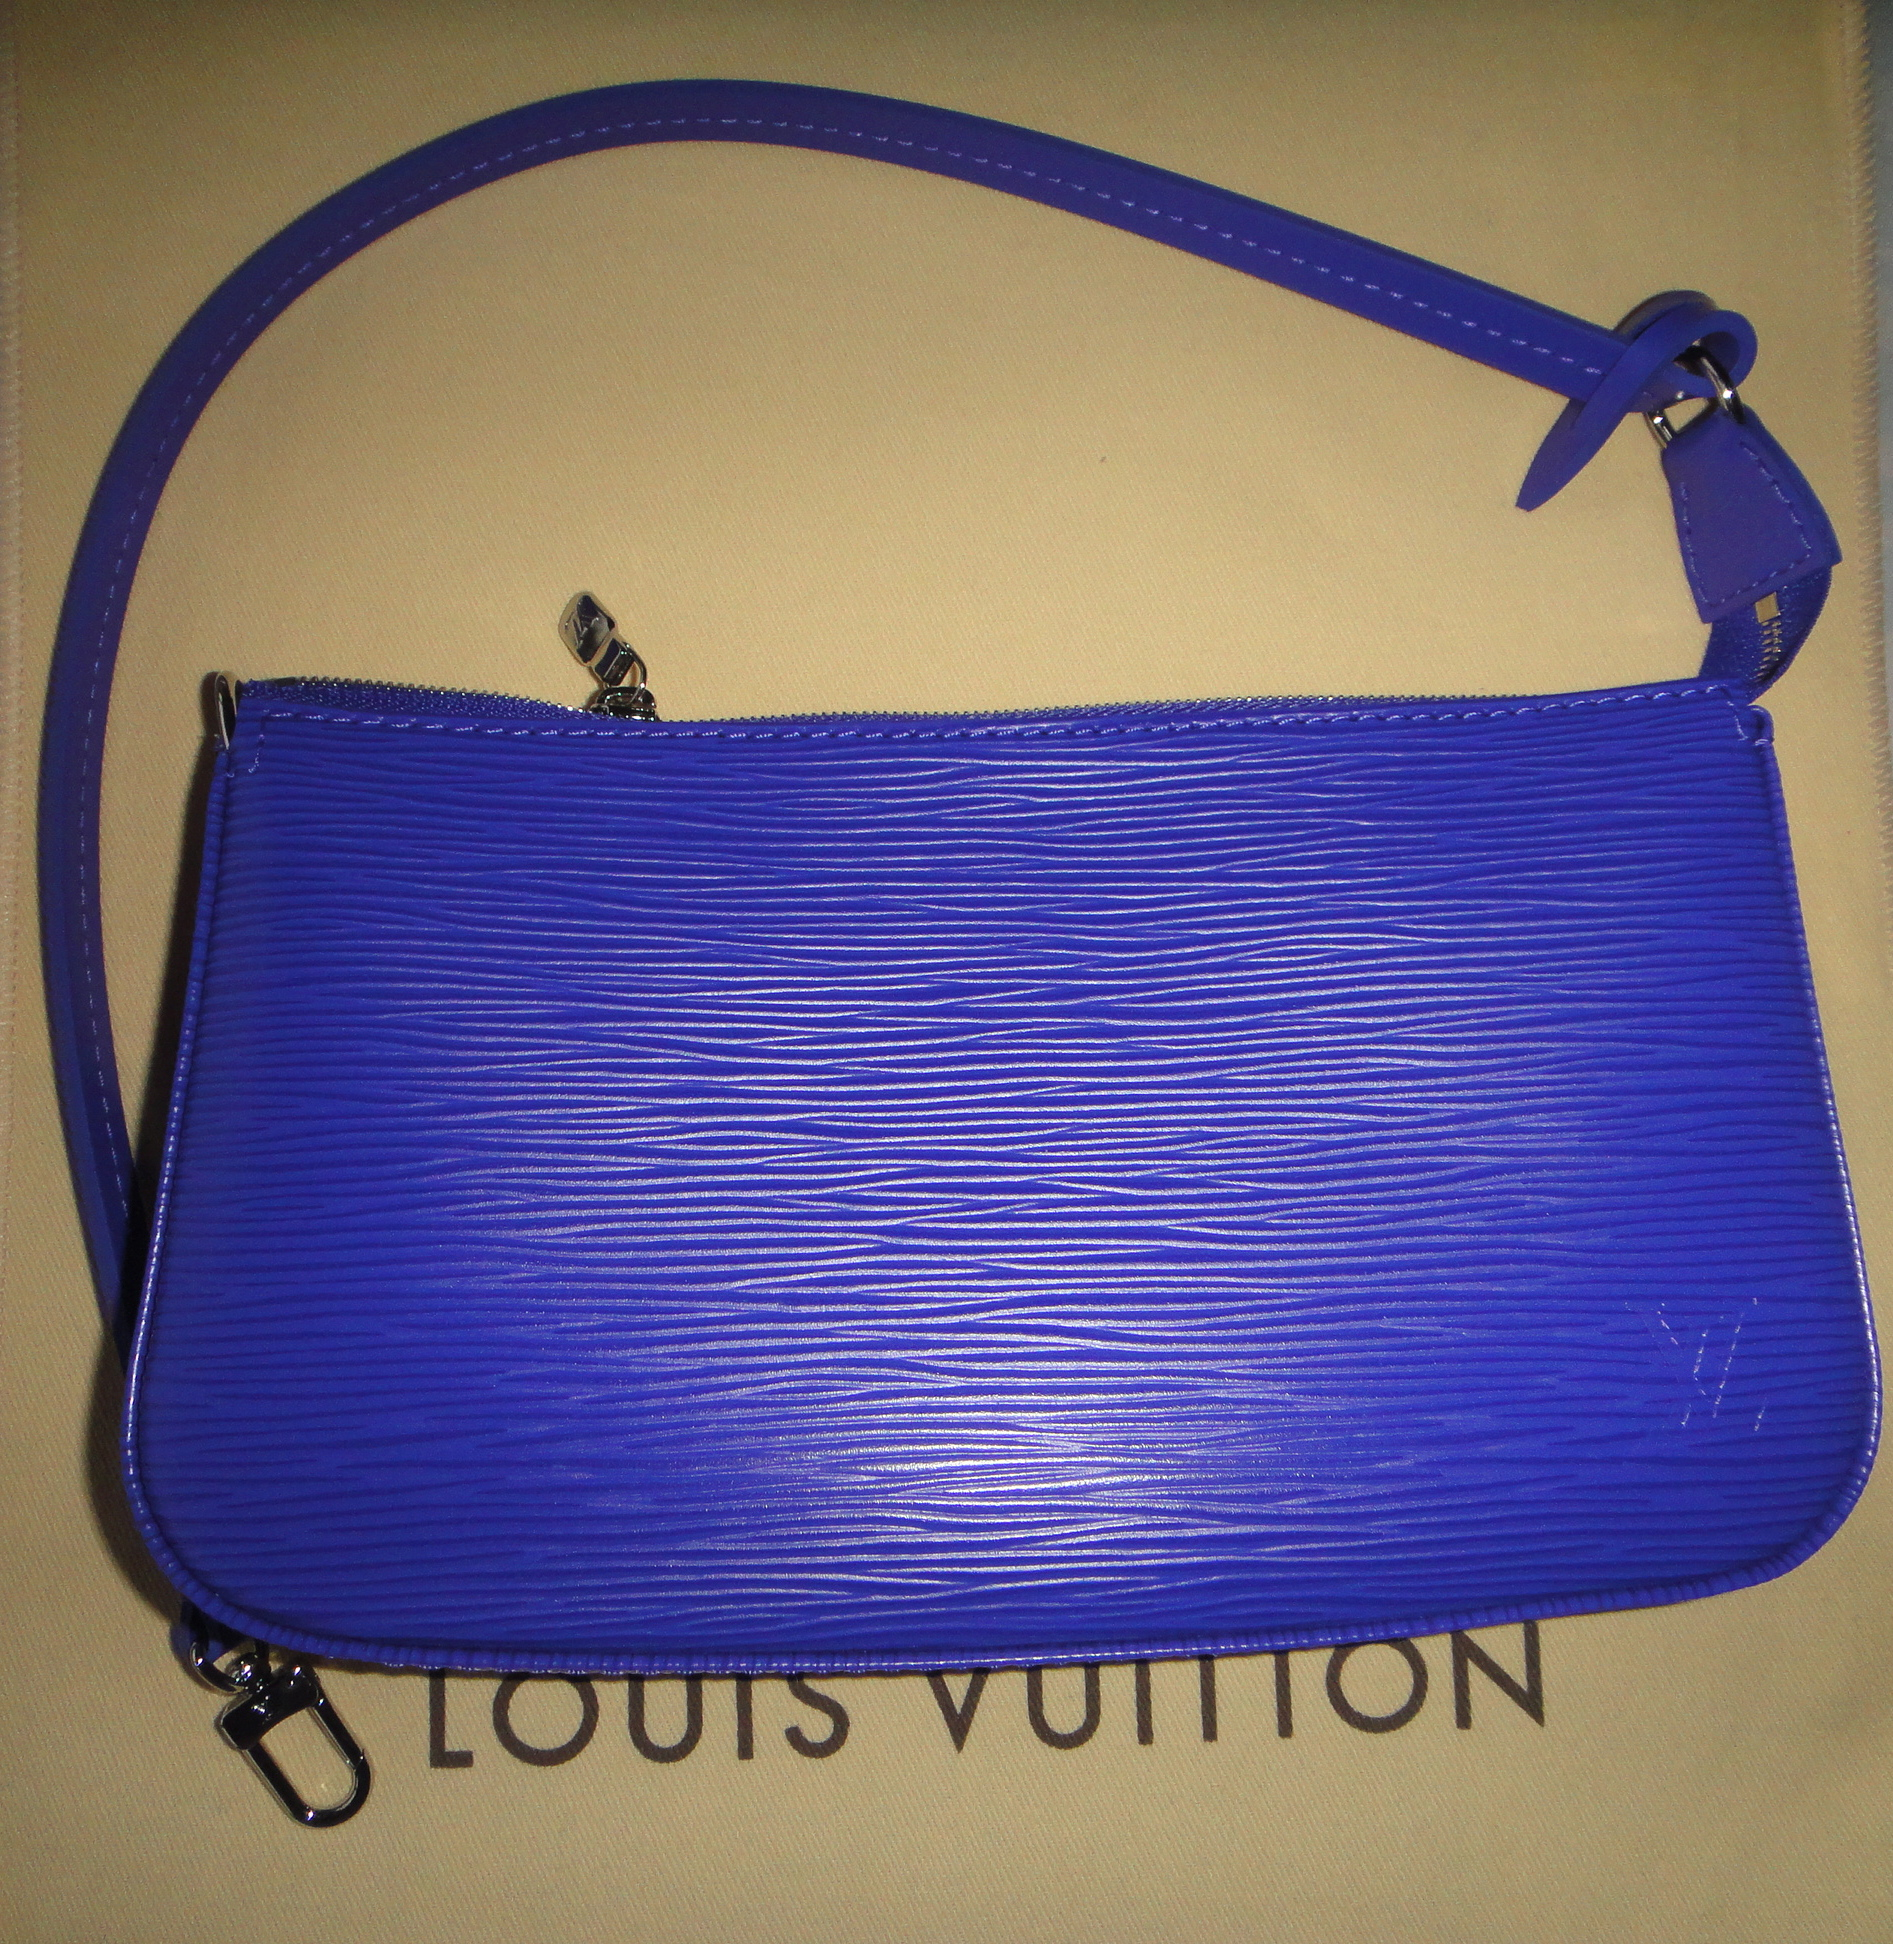 Louis Vuitton Epi Poch.Acc. in FIGUE